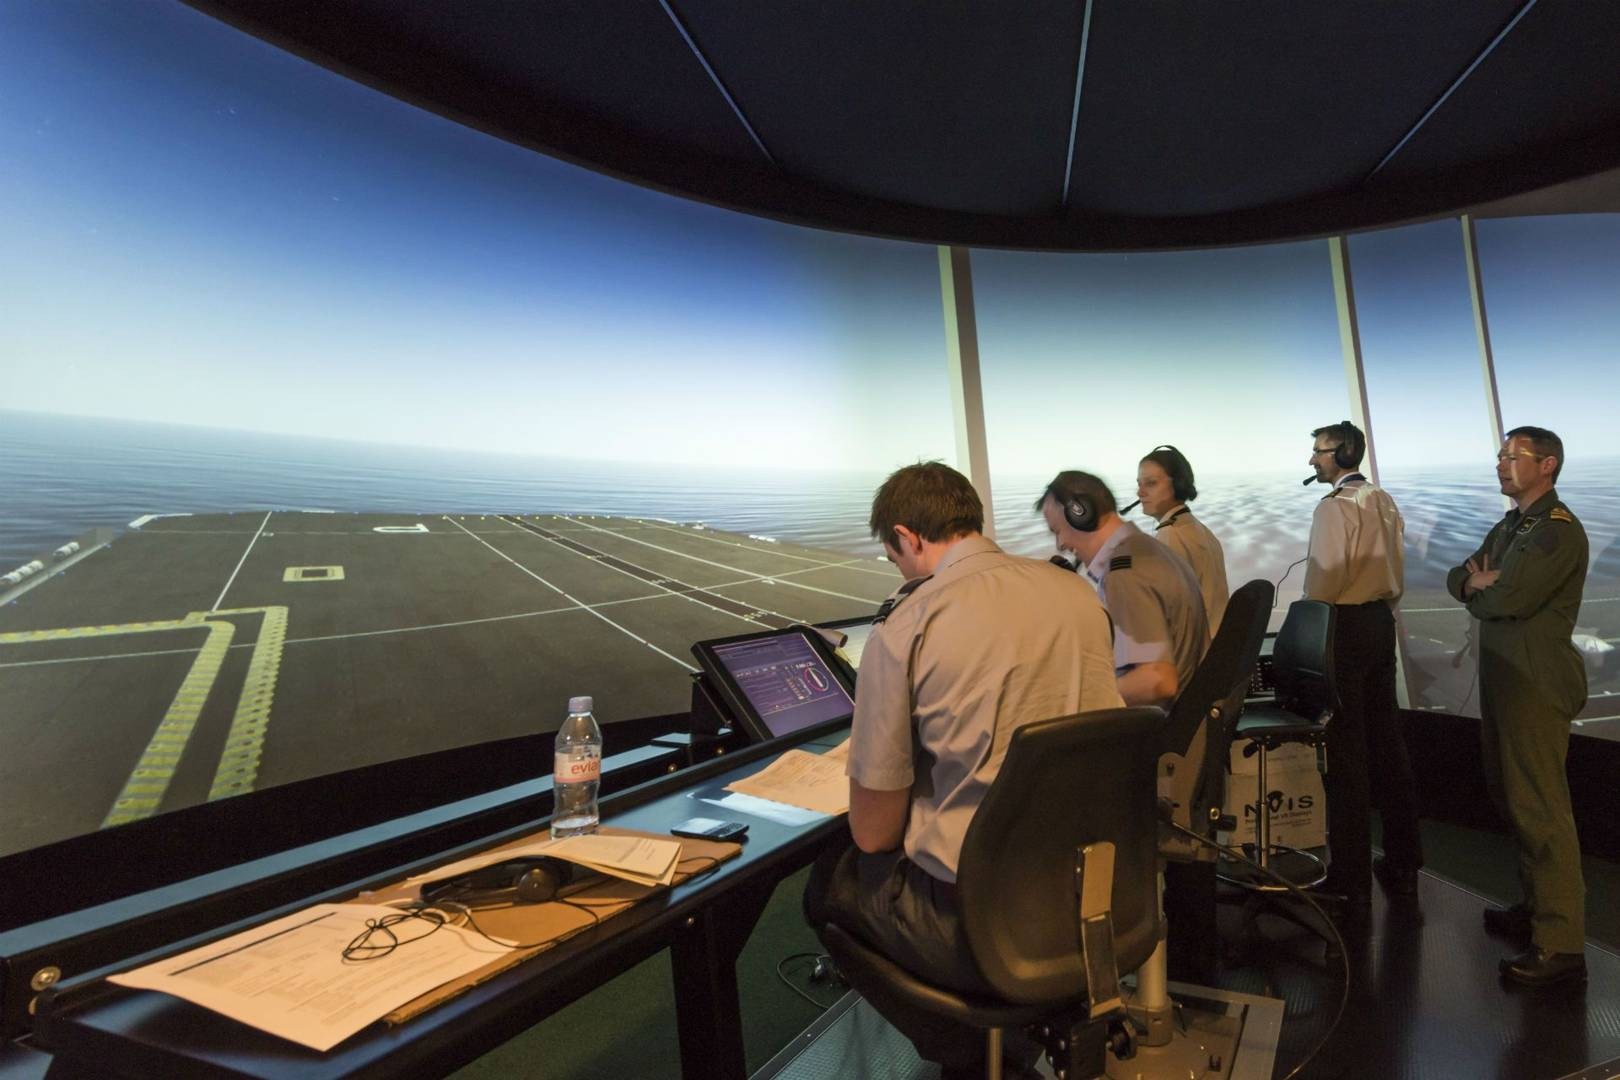 F35b Jet Simulator Behind The Scenes Of Baes Top Secret Project F18 Engine Diagram Wired Uk